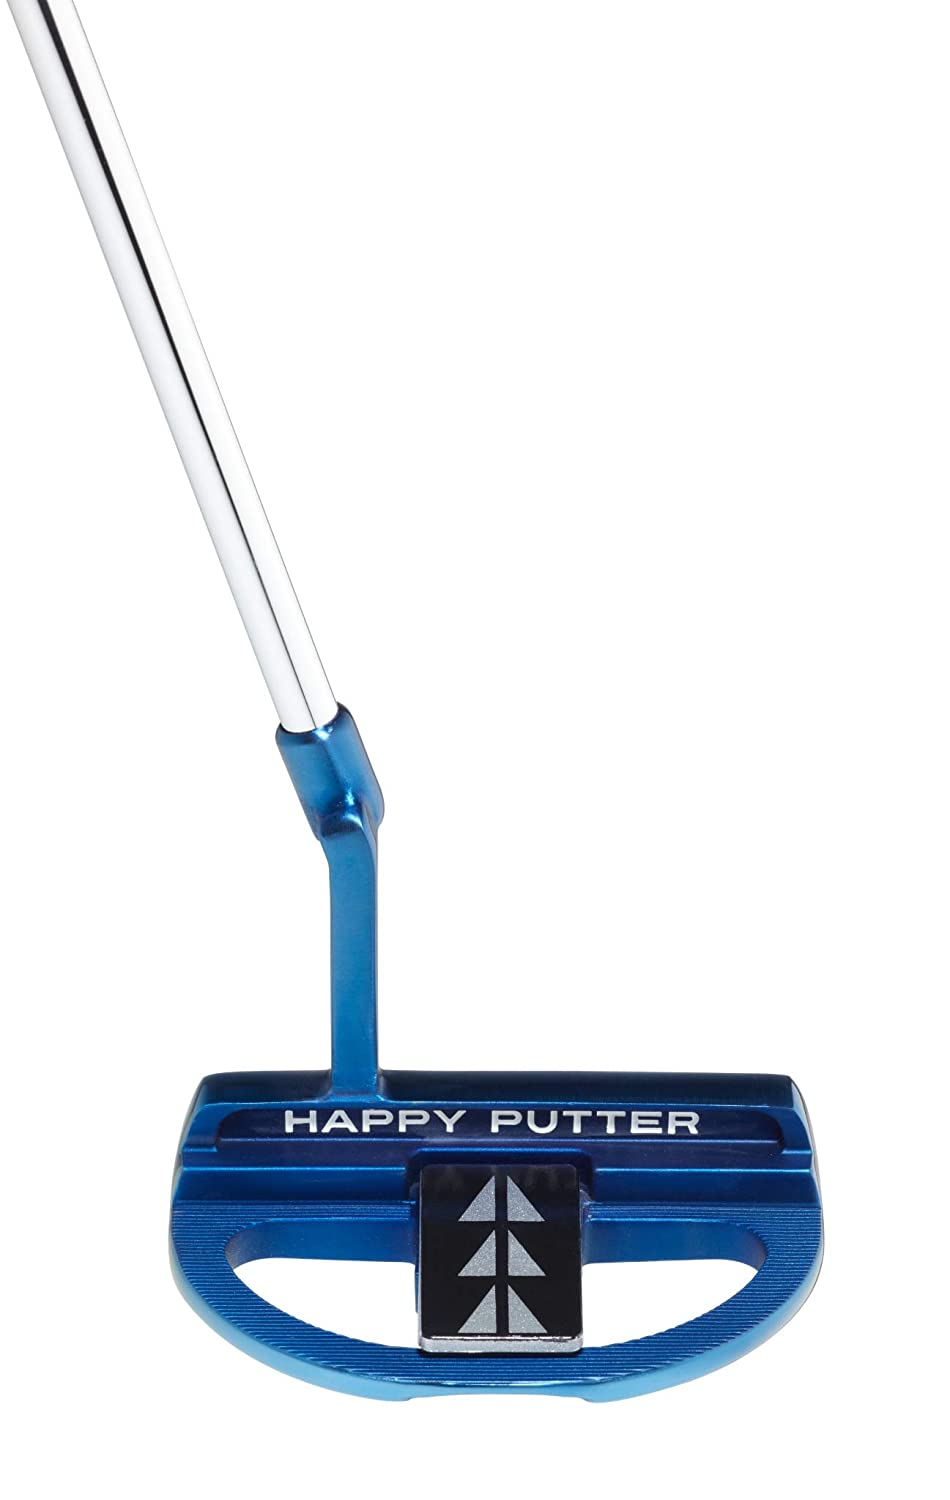 10 Best Putters For High Handicappers & Beginners In 2019 3